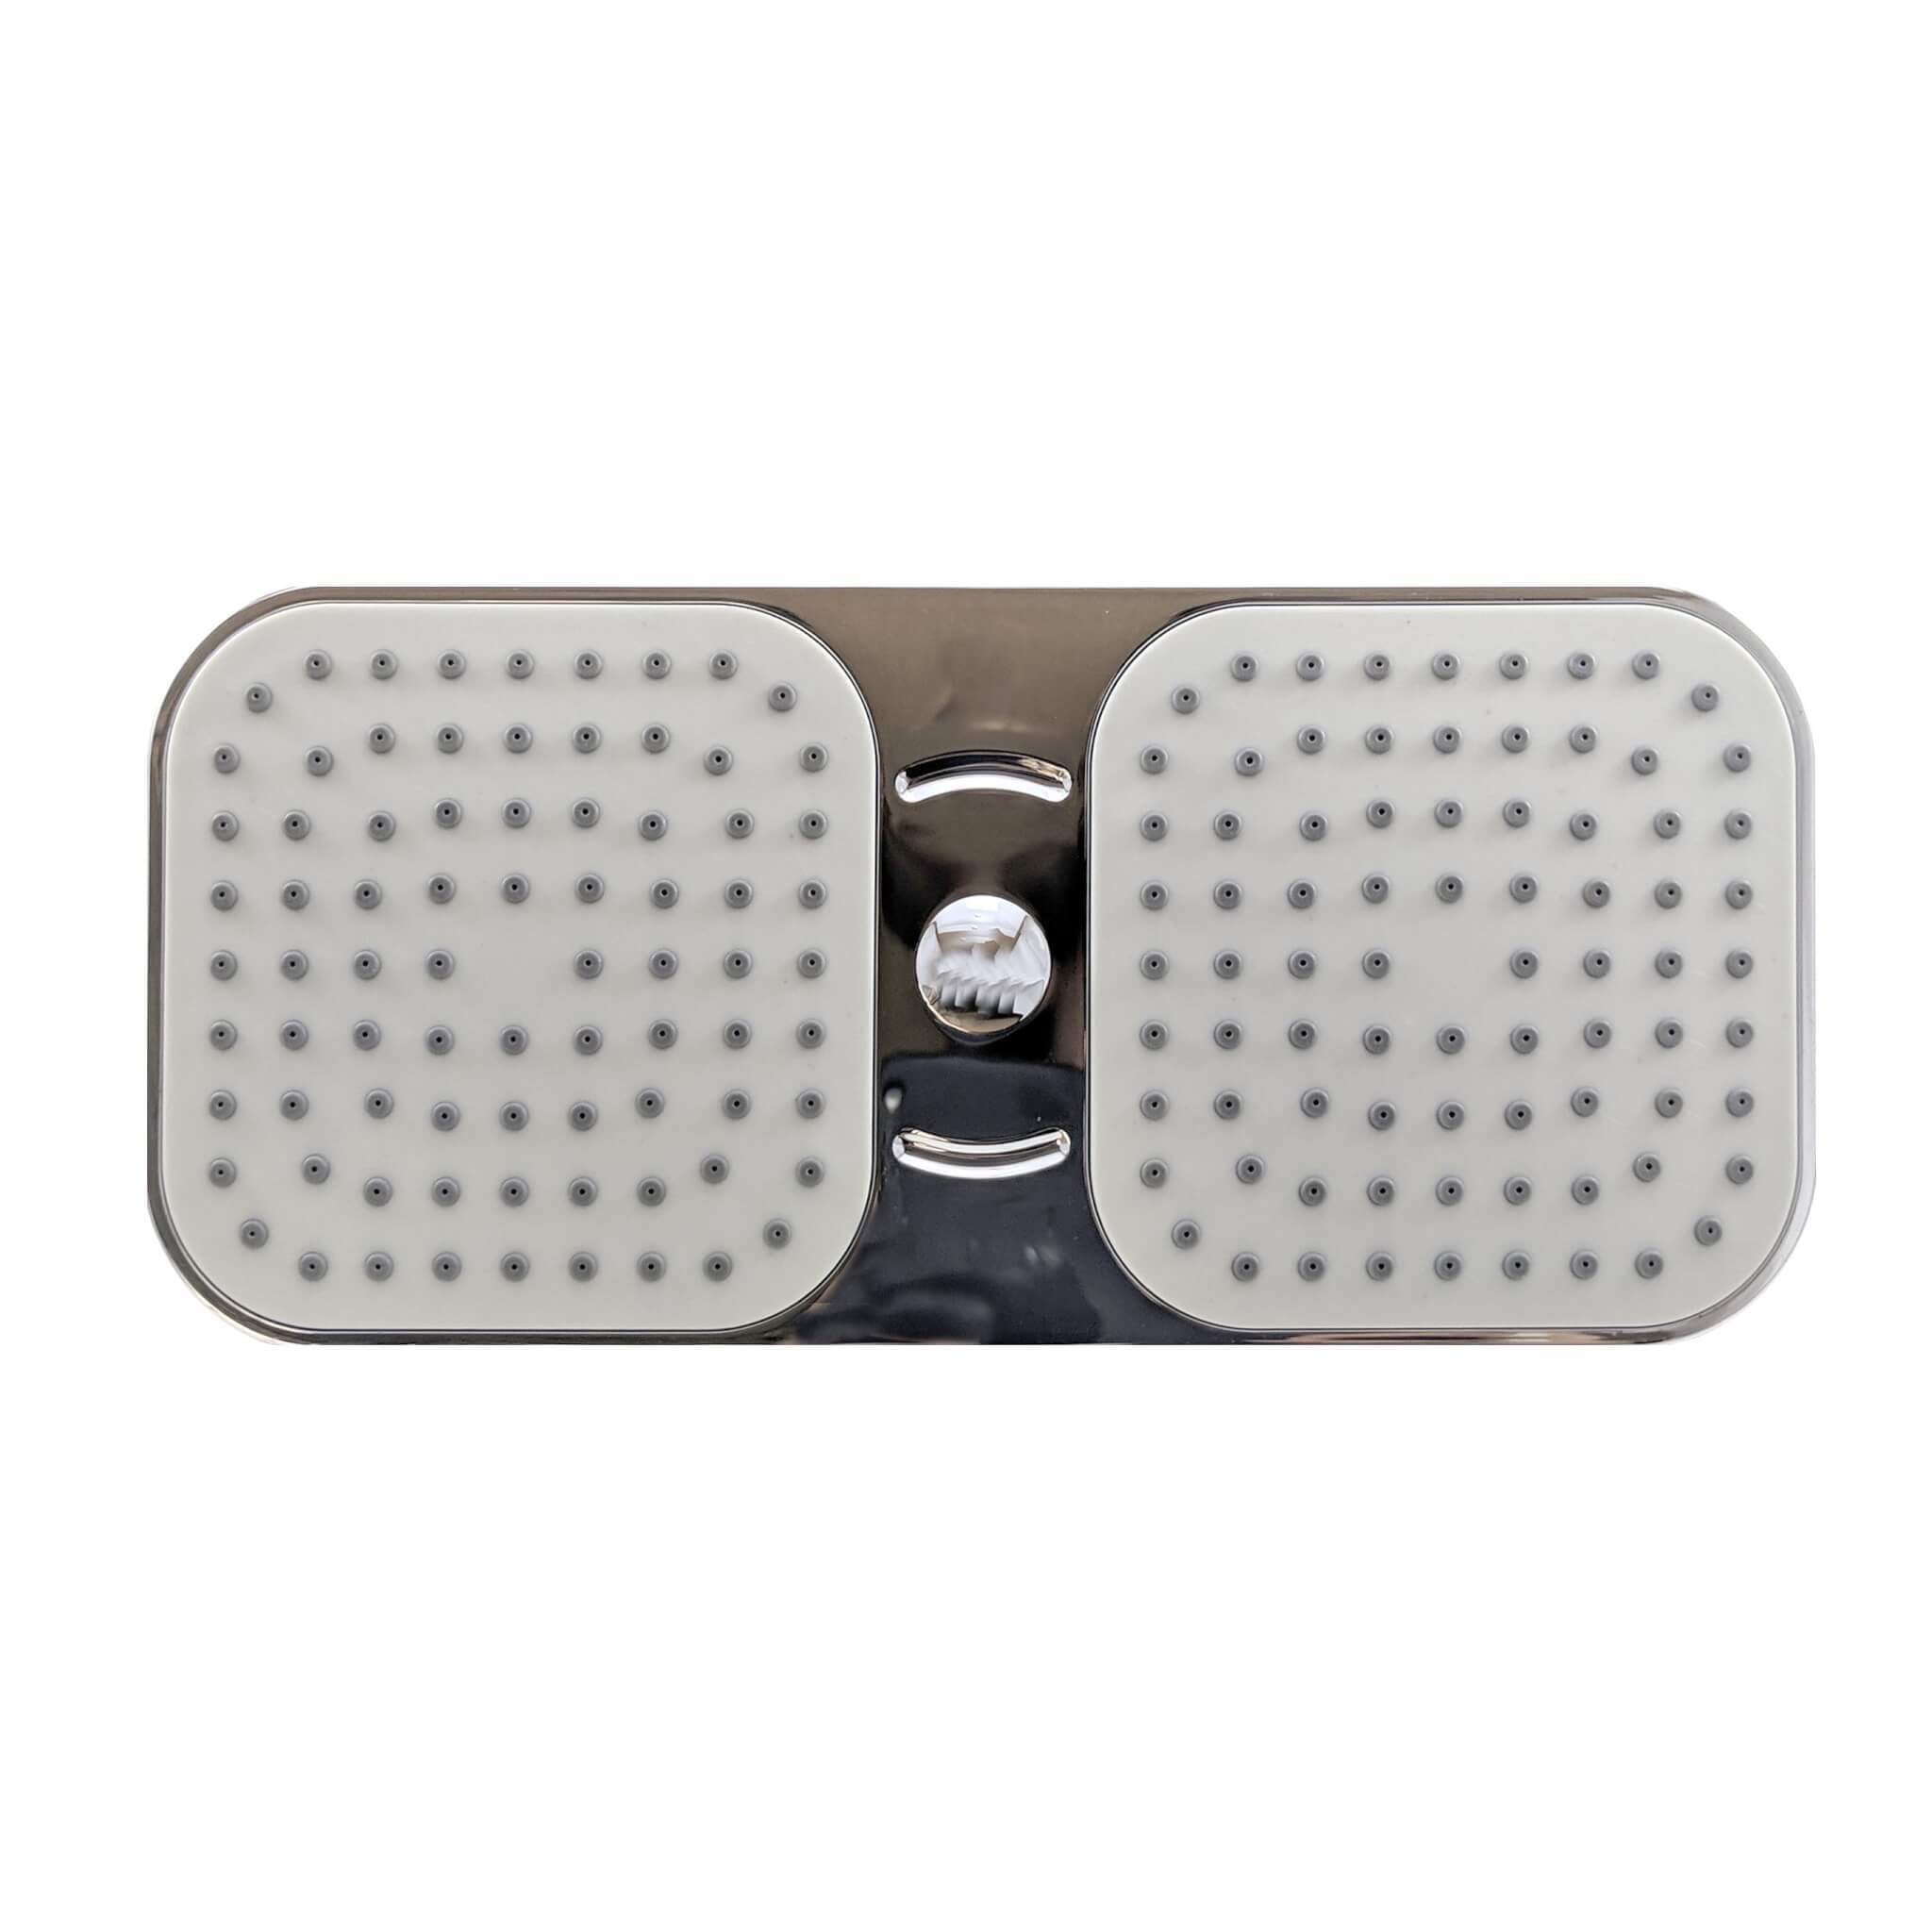 Bathroom Accessories Archives - Quincaillerie A1\'s Online Store